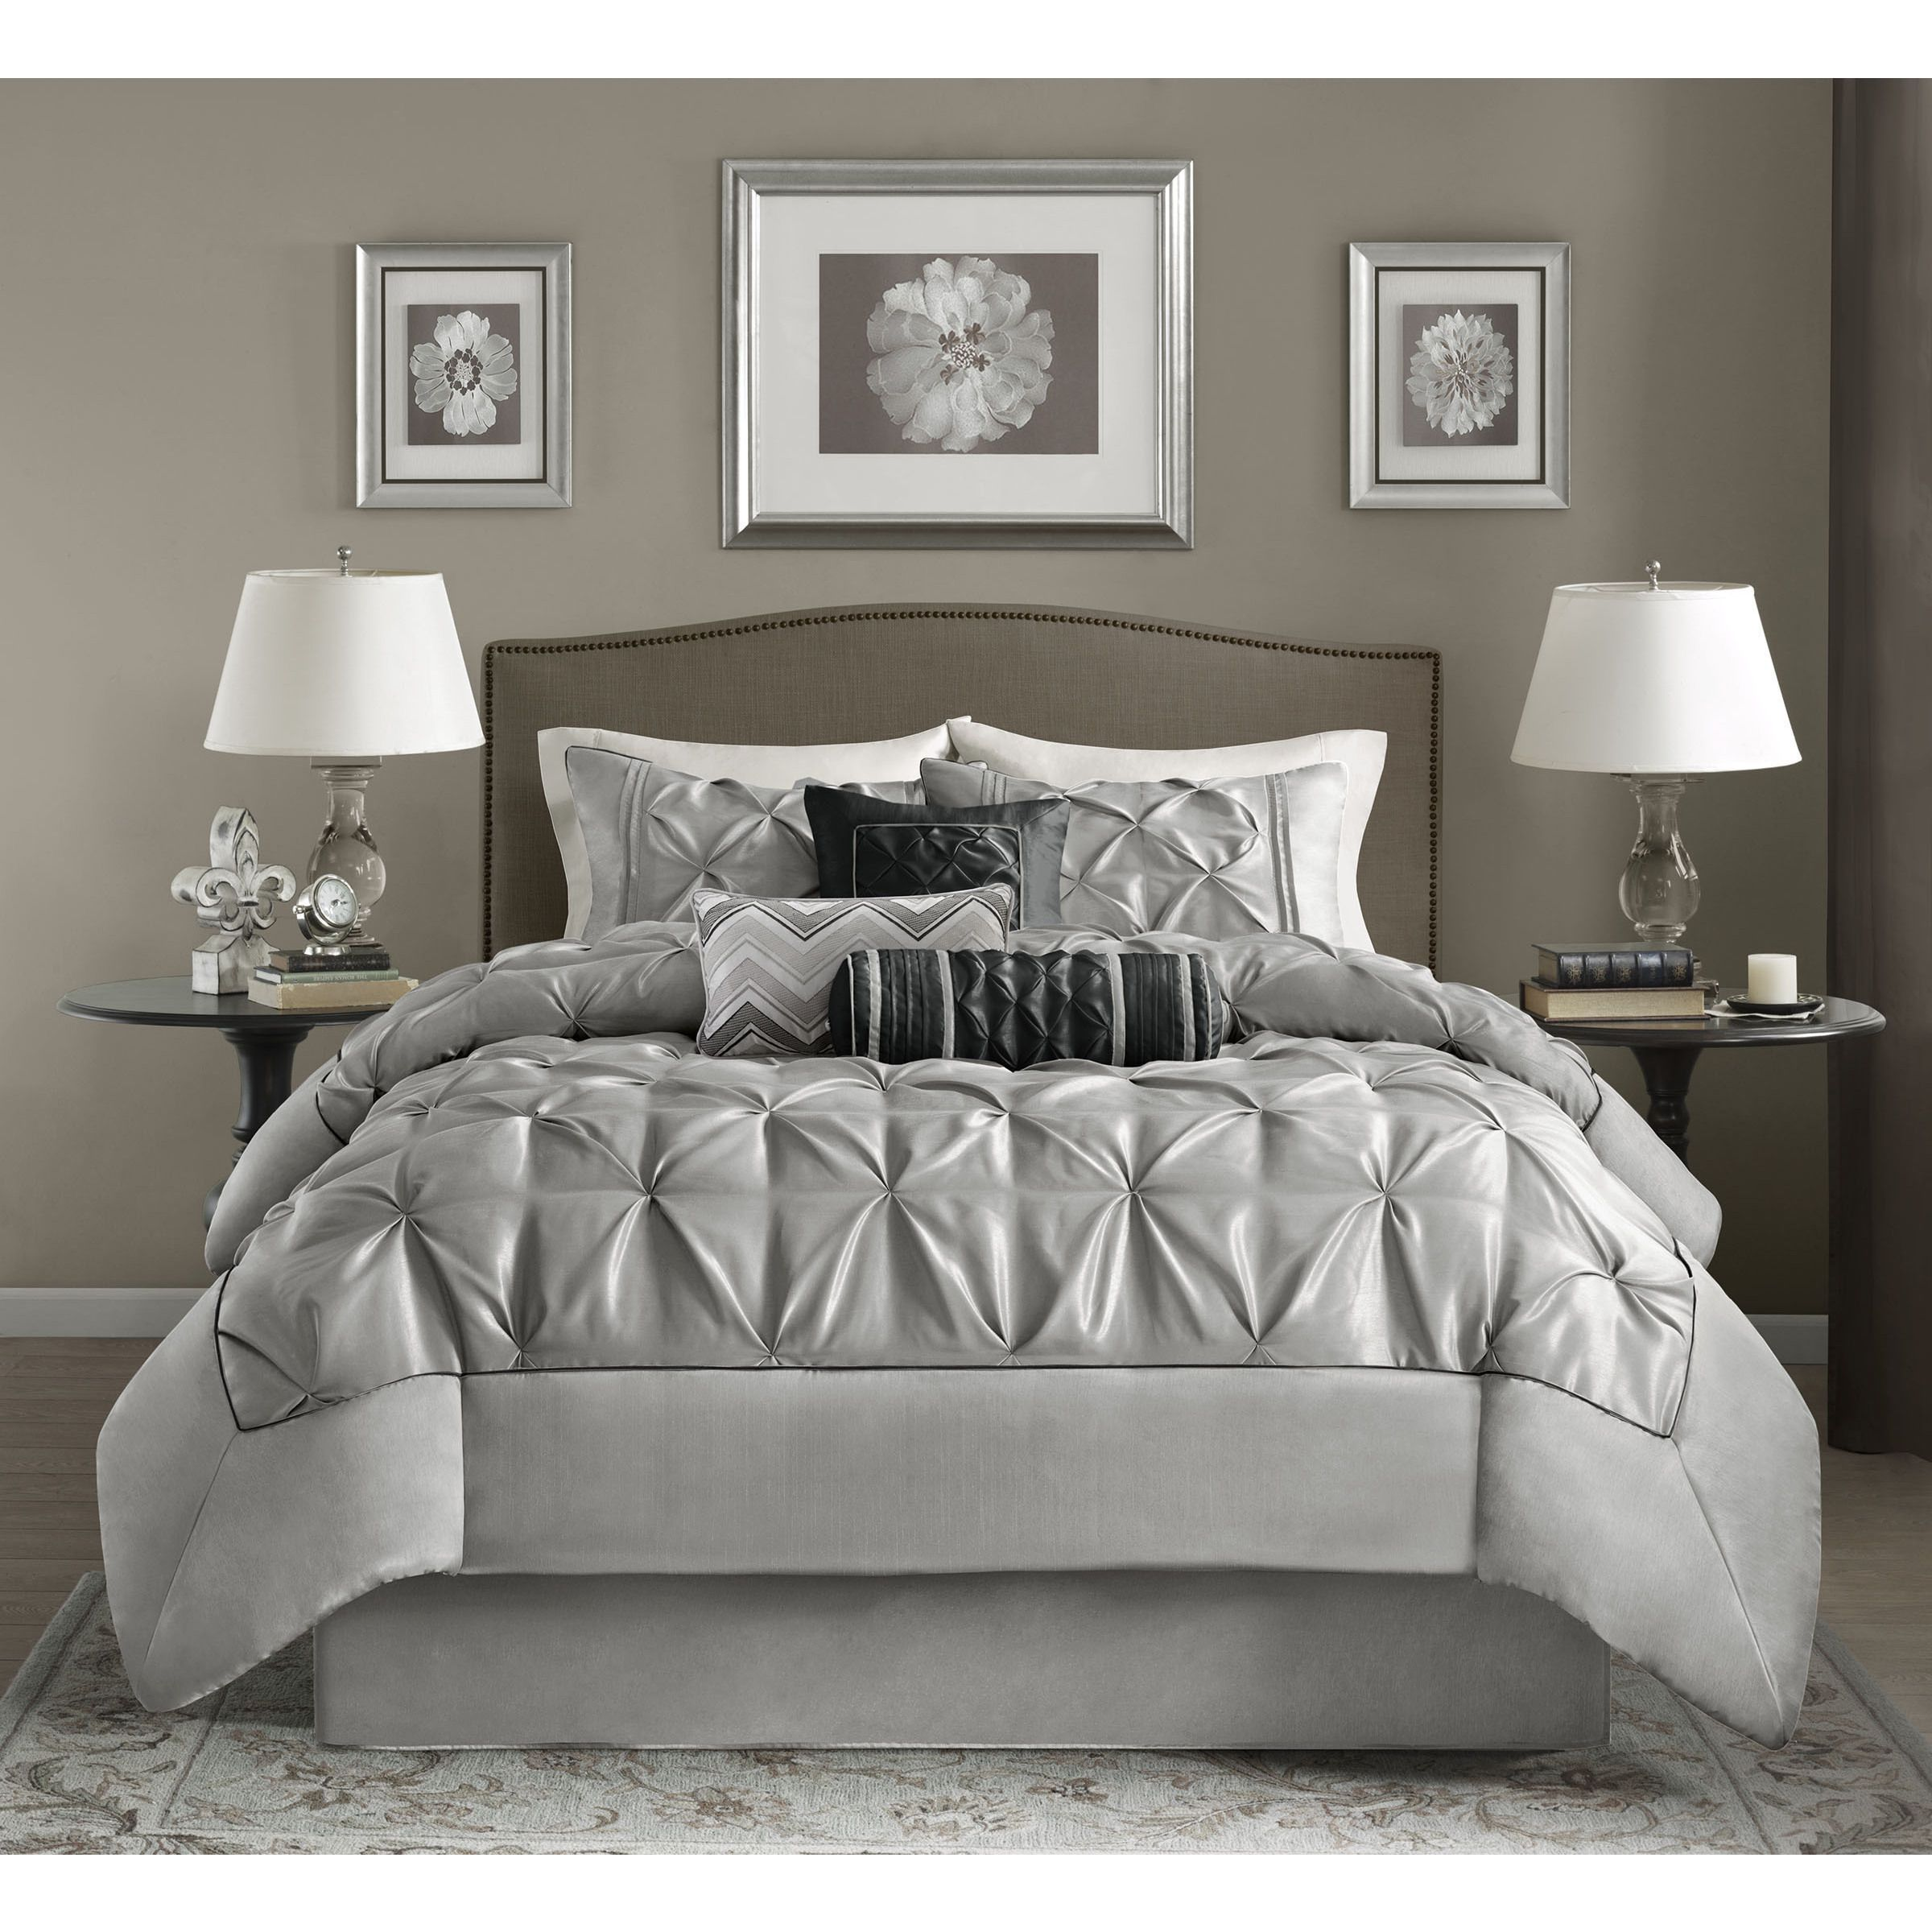 this beautifully tufted bed is from the cynthia bedding collection